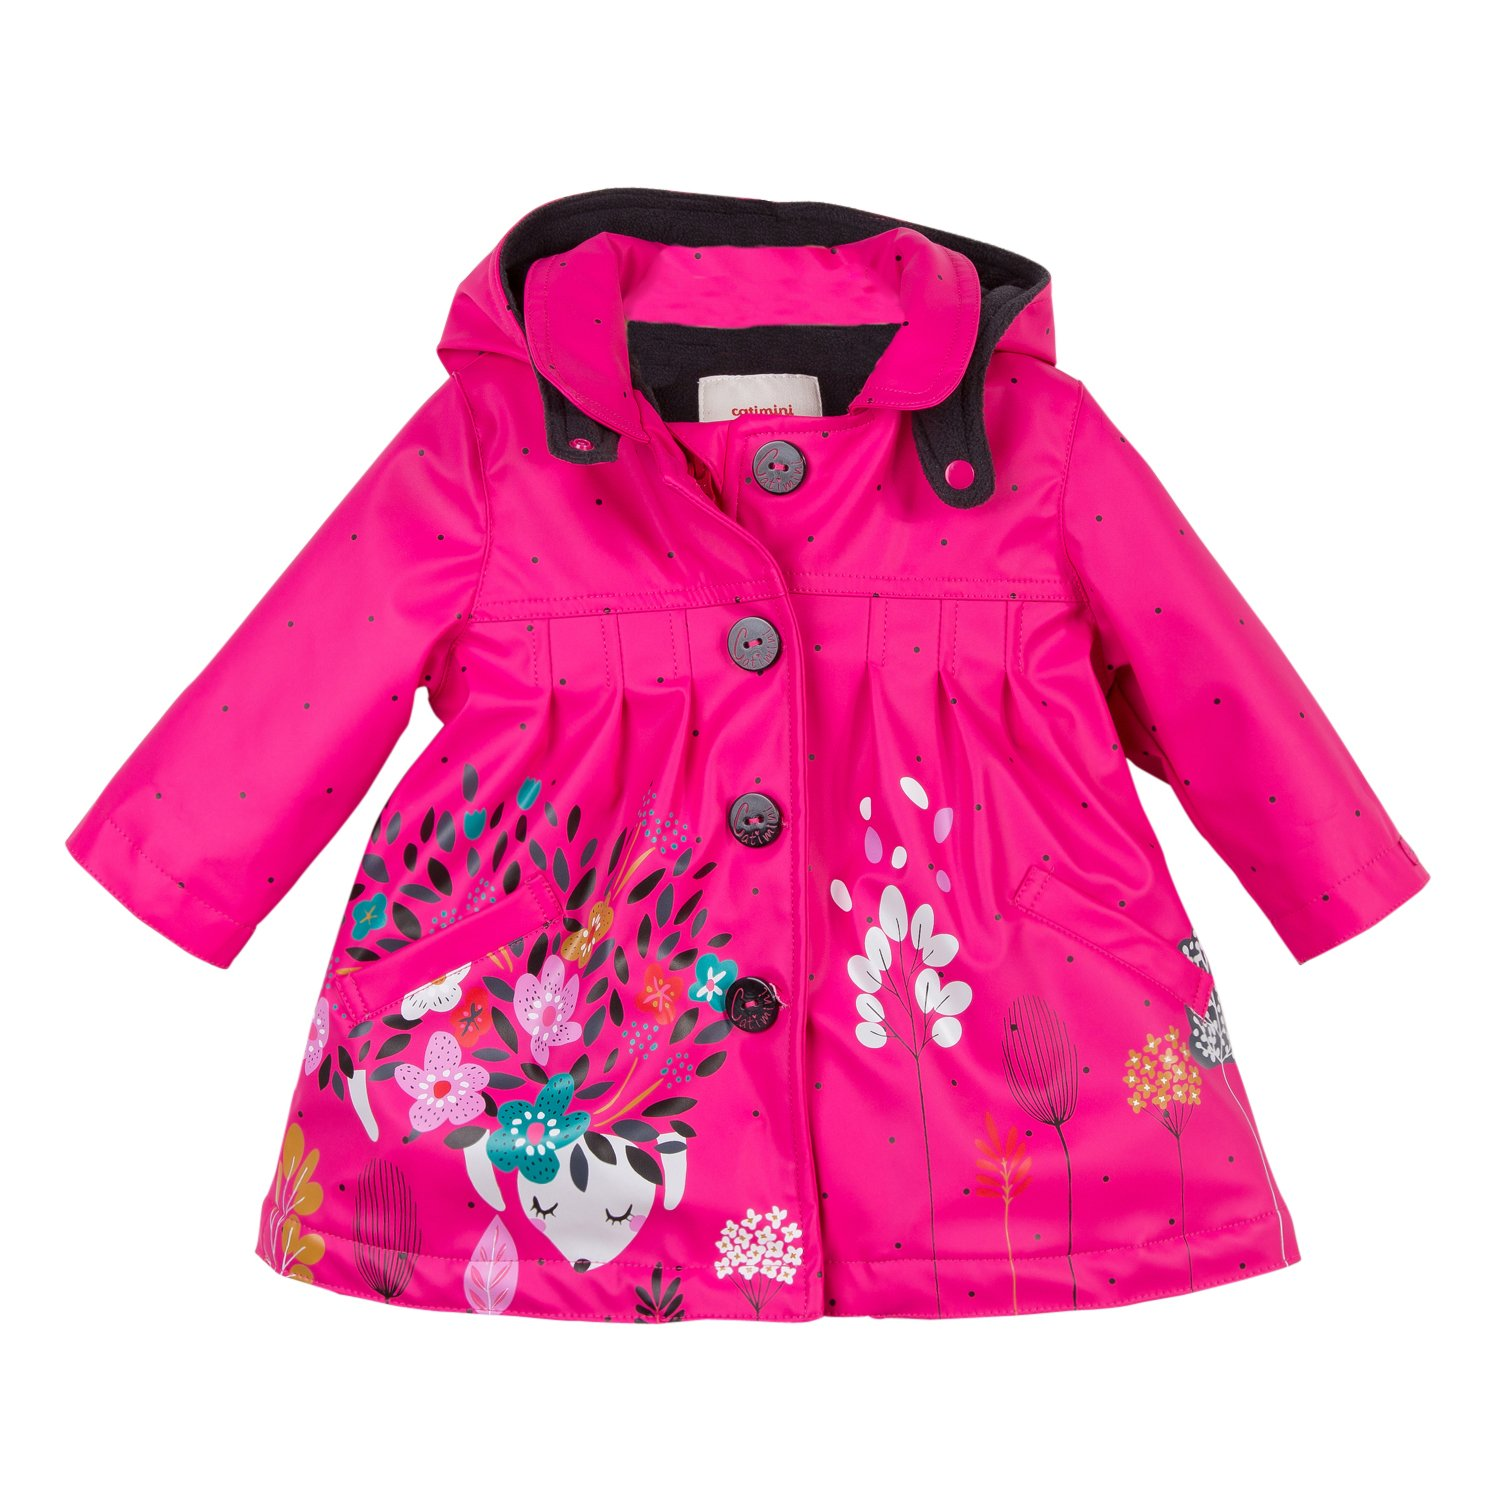 Pink Rubber Coated Raincoat with Floral Pattern